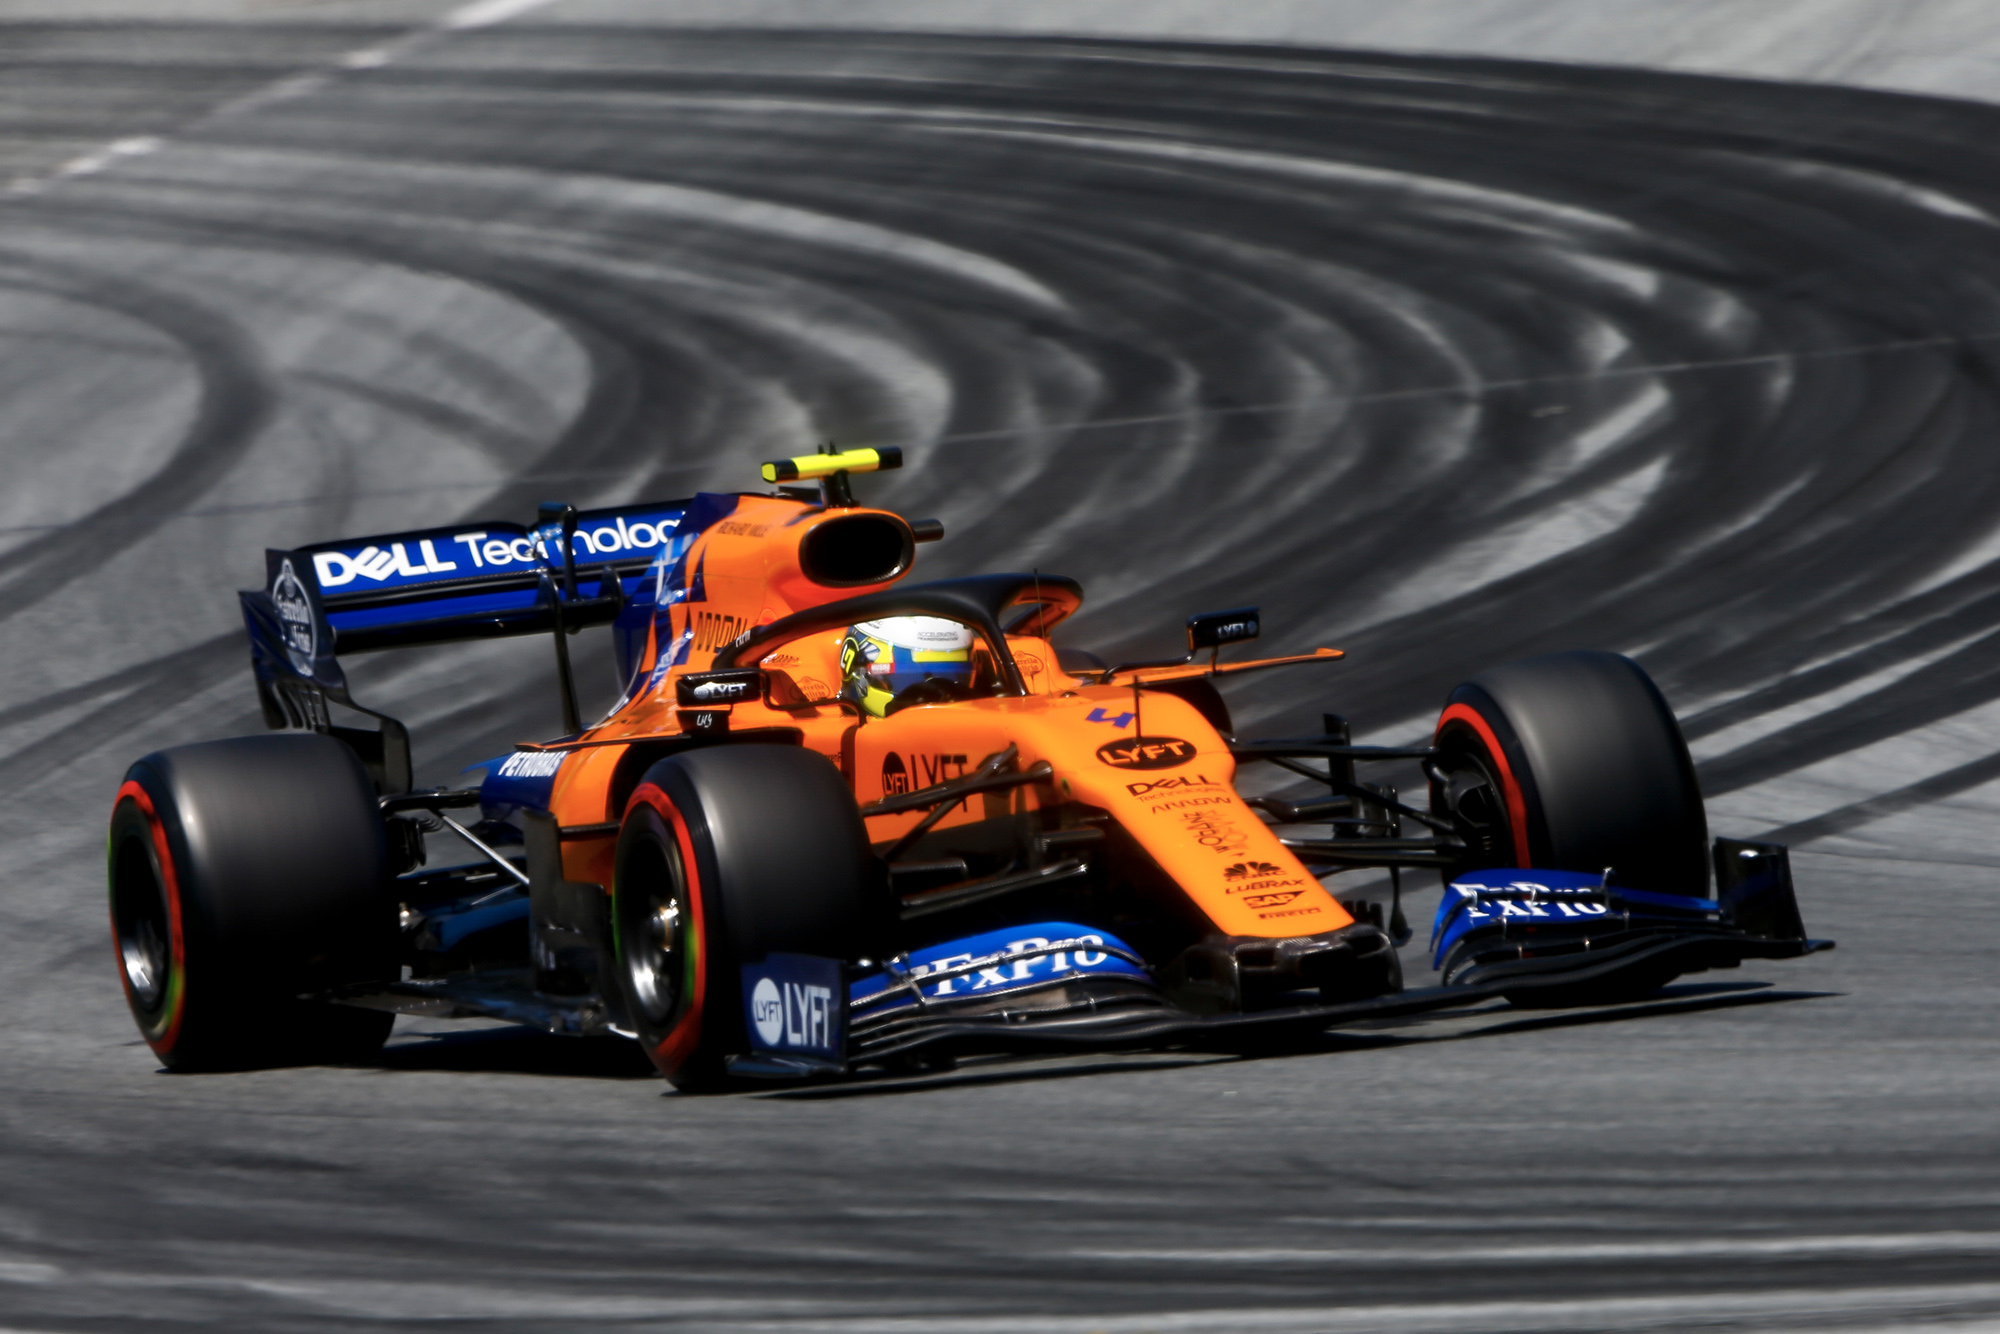 Lando Norris in the 2019 Austrian Grand Prix